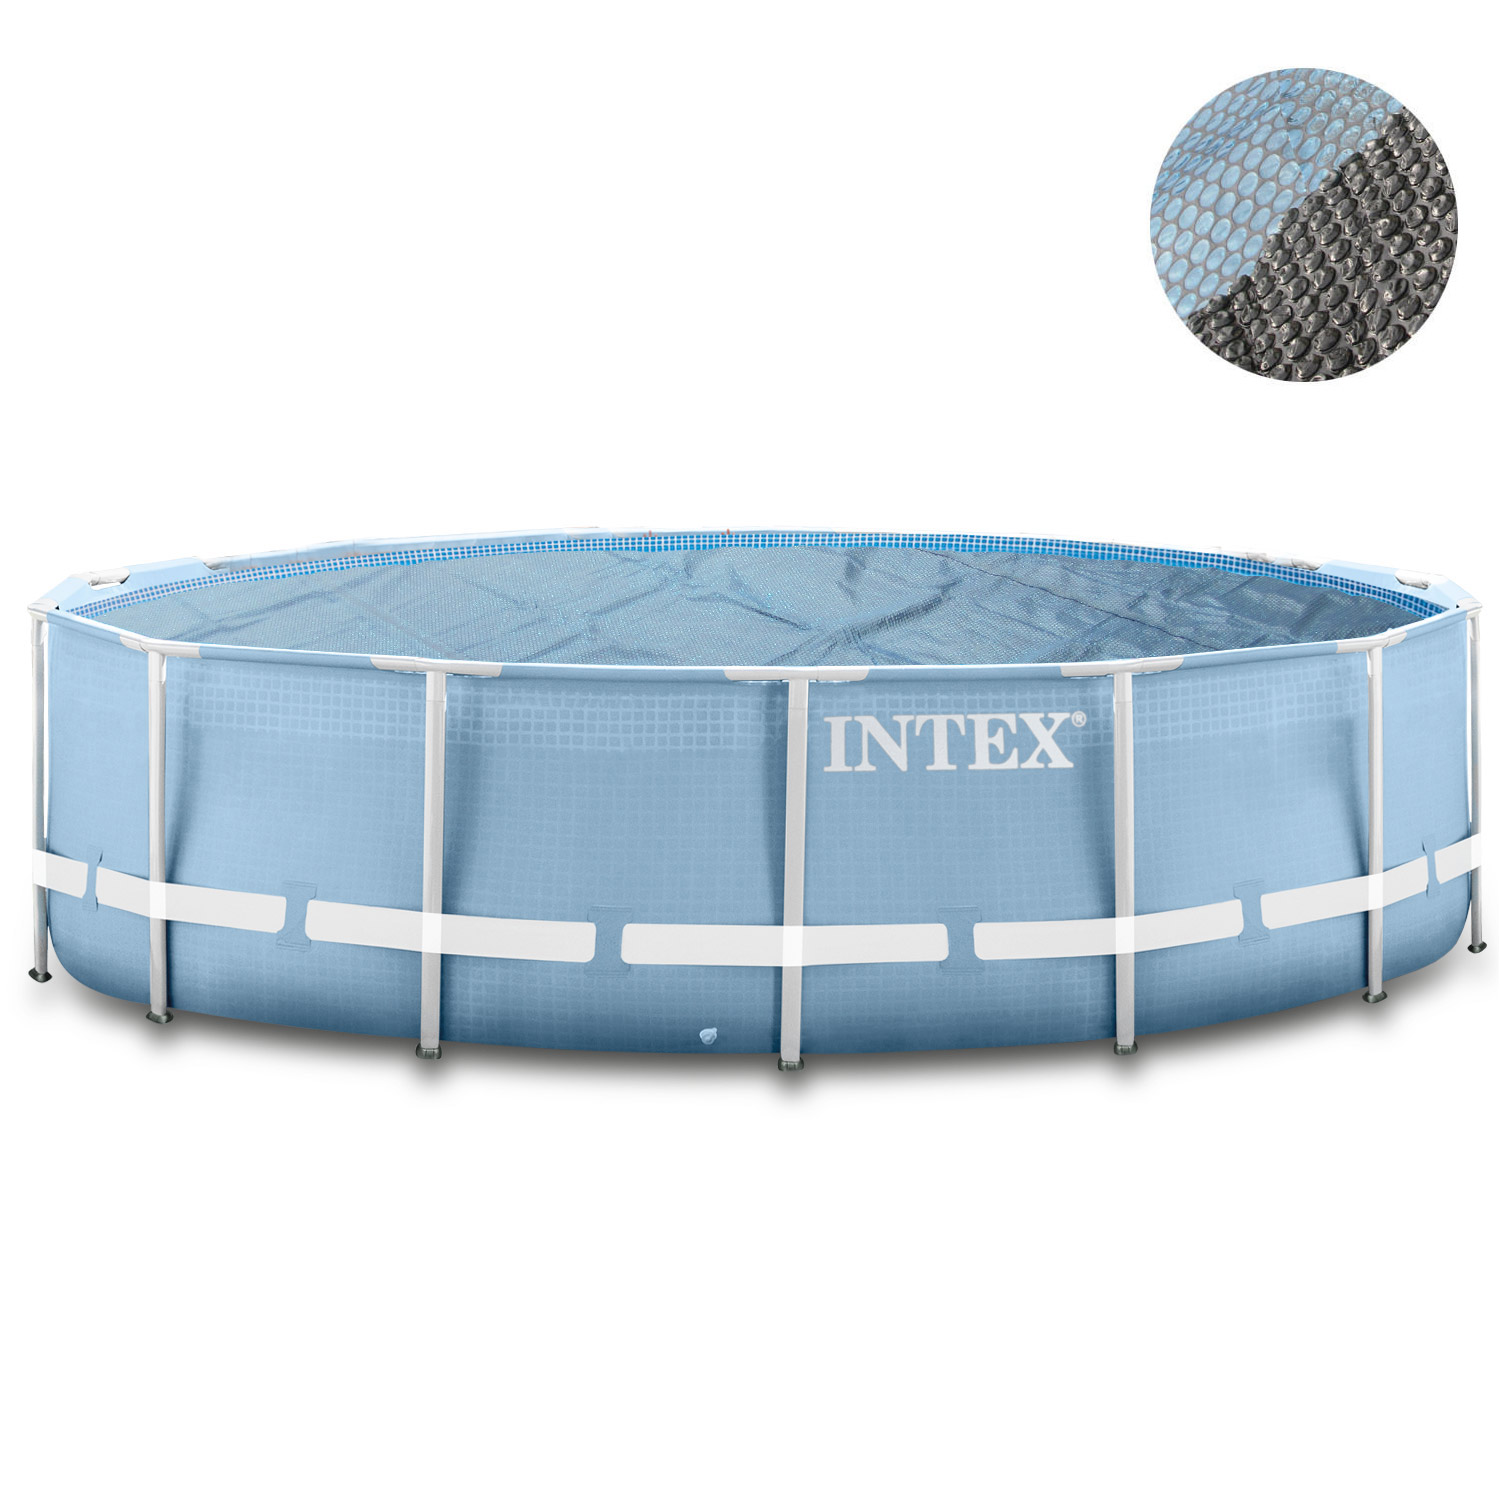 intex swimming pool frame 366x122 cm mit sandfilter leiter solarfolie. Black Bedroom Furniture Sets. Home Design Ideas